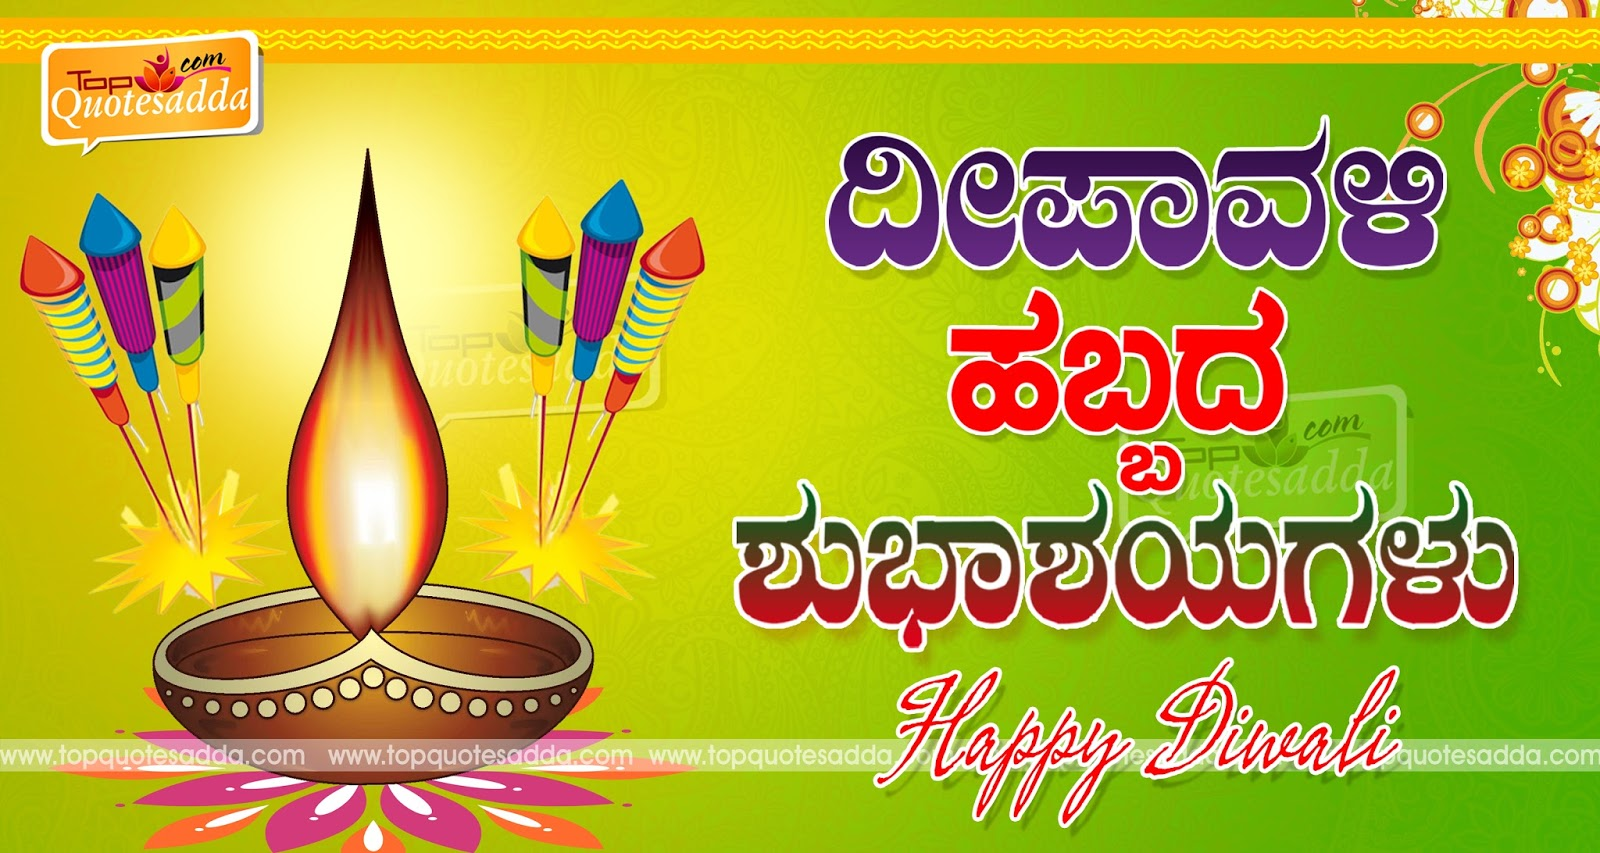 Here is a 2015 deepavali bengali language quotes and messages online here is a 2015 deepavali bengali language quotes and messages online top bangla diwali wishes and quotations onlinehappy diwali bengali quotes wi kristyandbryce Gallery